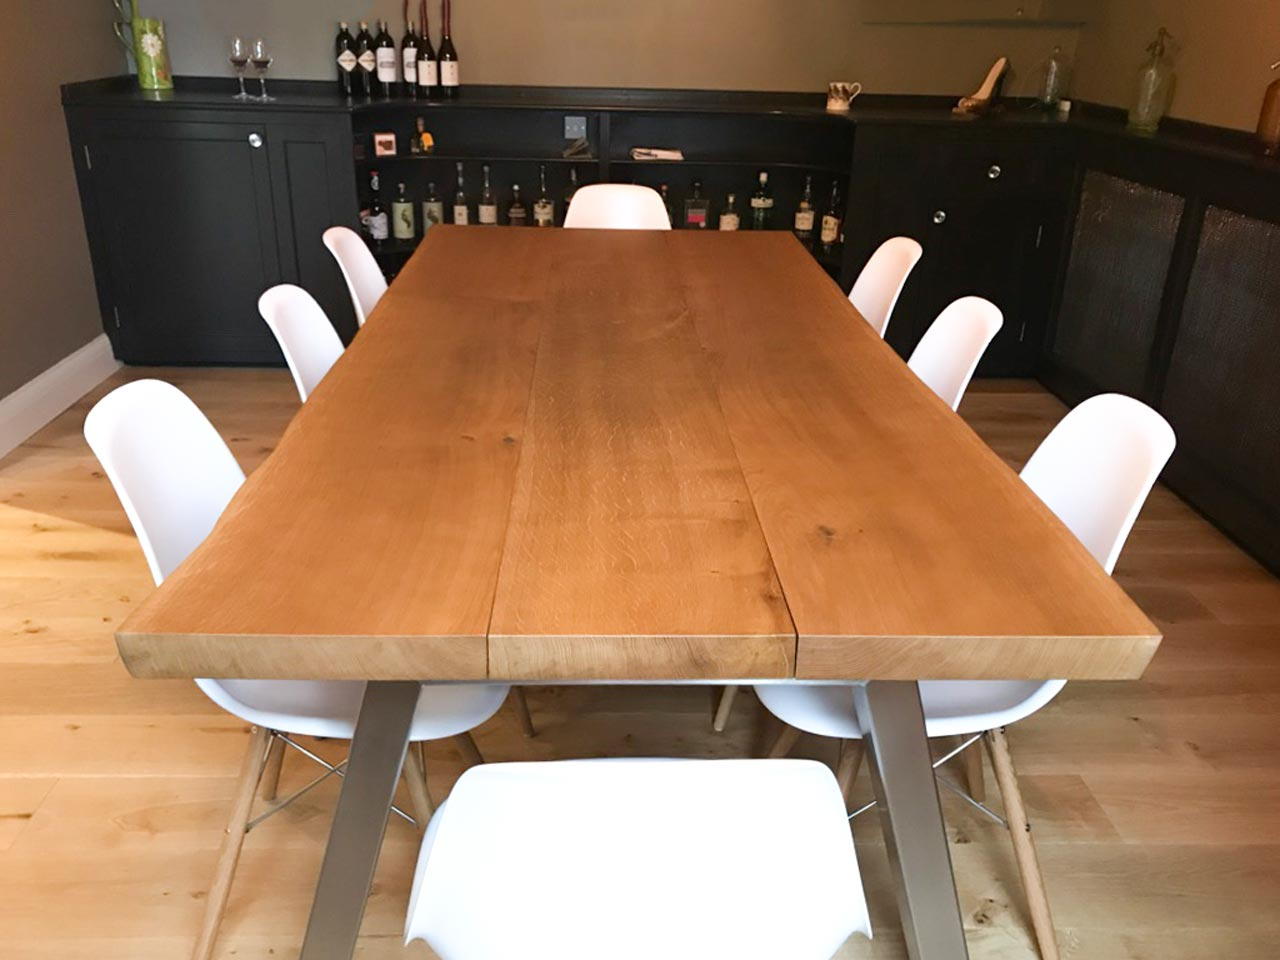 Bespoke Oak Dining Table by Abacus Tables